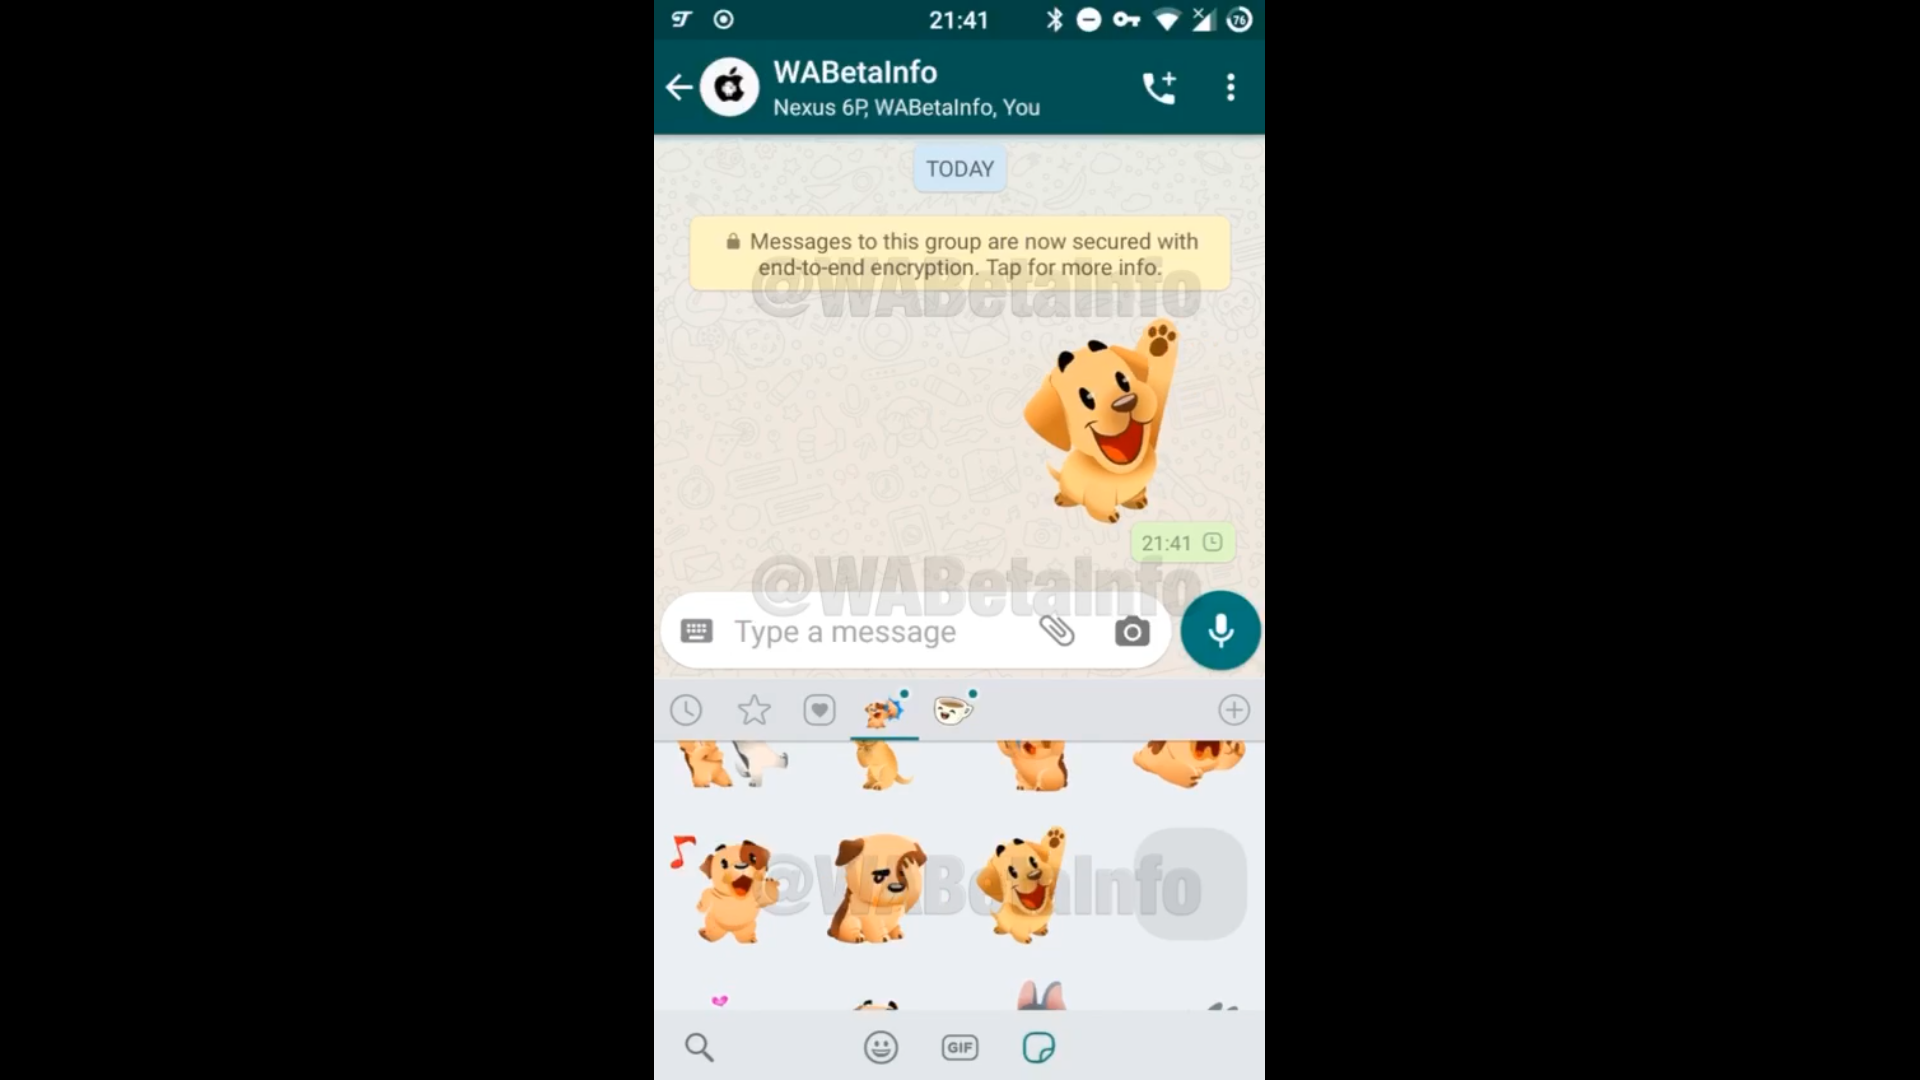 Video de prueba de los stickers animados en WhatsApp.